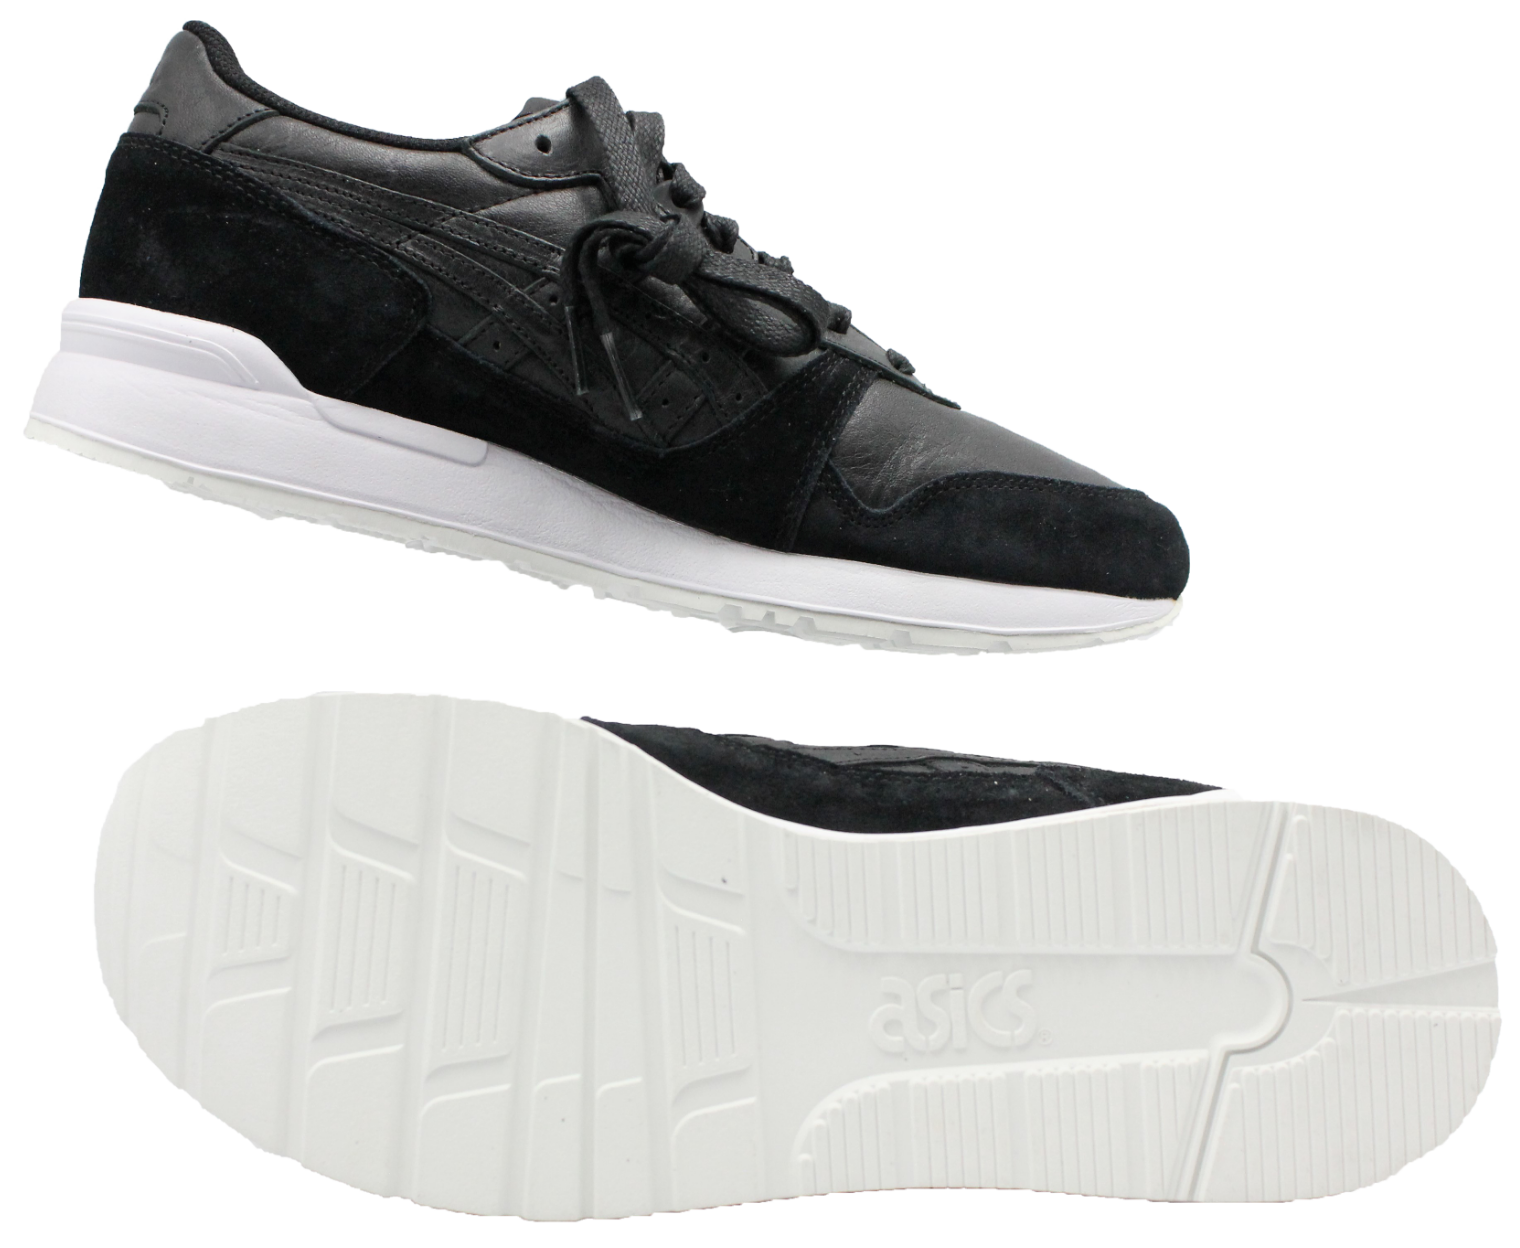 ASICS Gel Lyte Leather & Suede Men's Athletics Fashion Sneakers Size 9 NEW